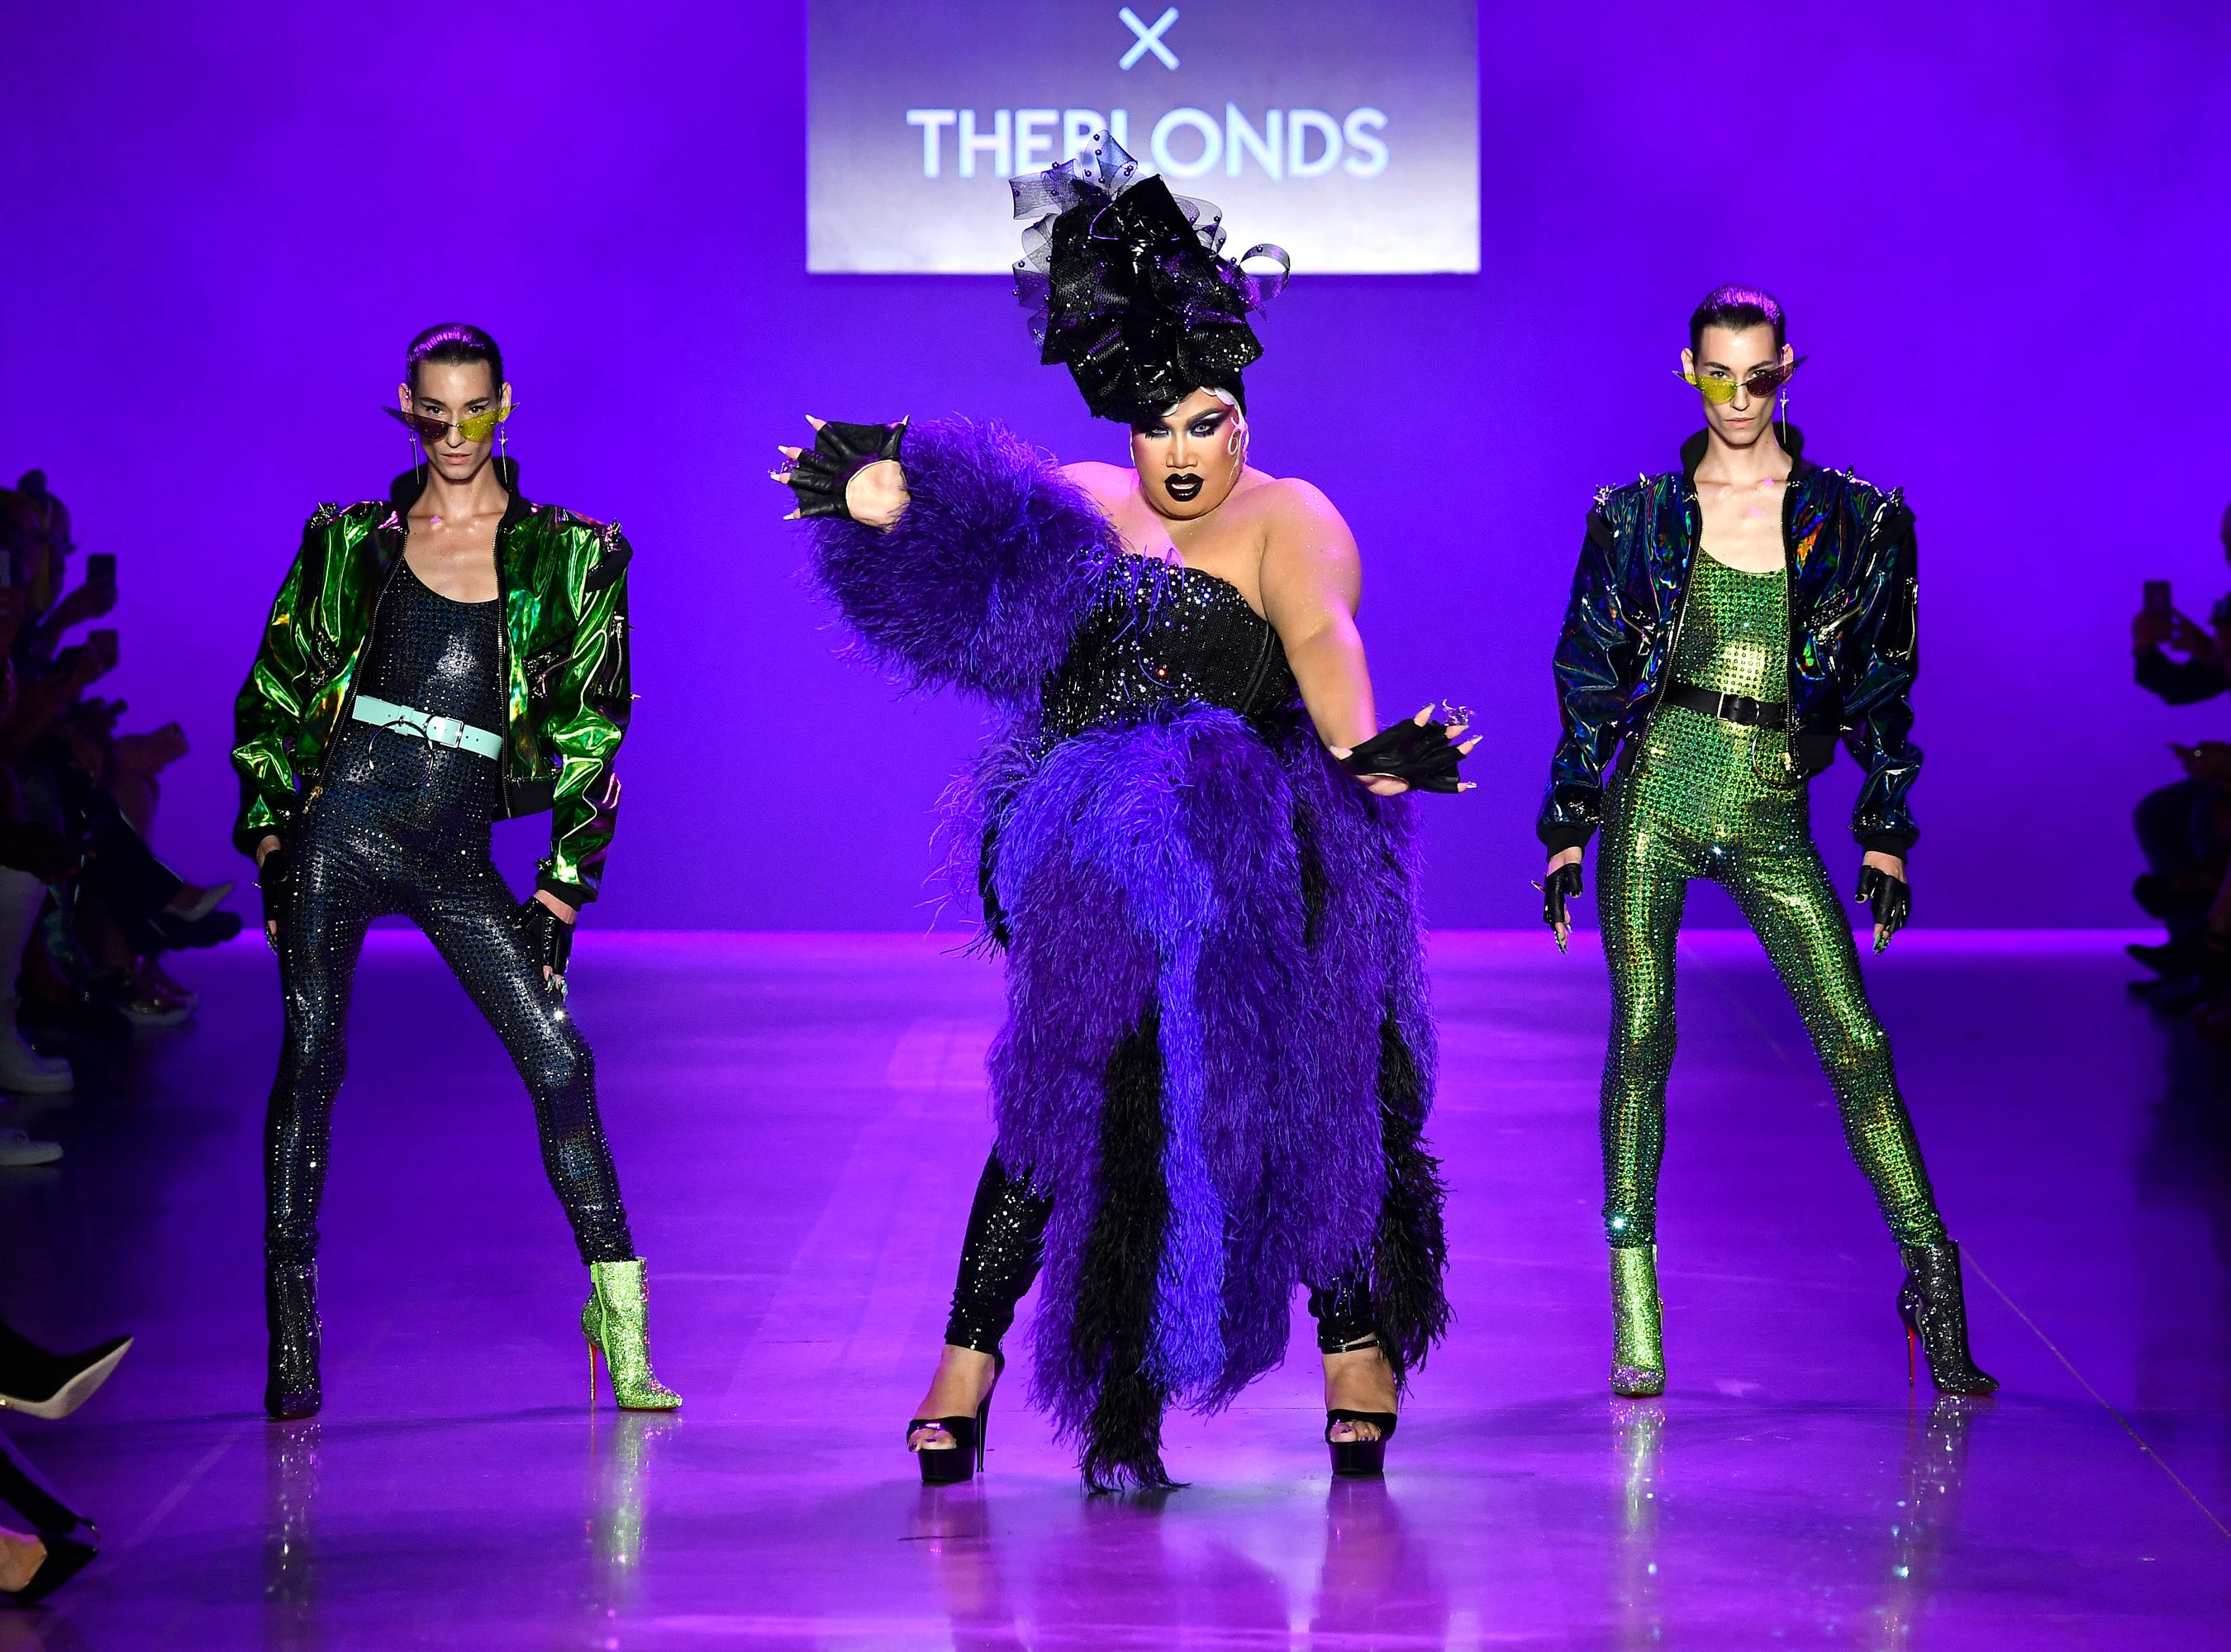 NEW YORK, NY - SEPTEMBER 07:  Models walk the runway at the Disney Villains x The Blonds NYFW Show during New York Fashion Week: The Shows at Gallery I at Spring Studios on September 7, 2018 in New York City.  (Photo by Frazer Harrison/Getty Images for Disney) ORG XMIT: 775216302 ORIG FILE ID: 1028922576